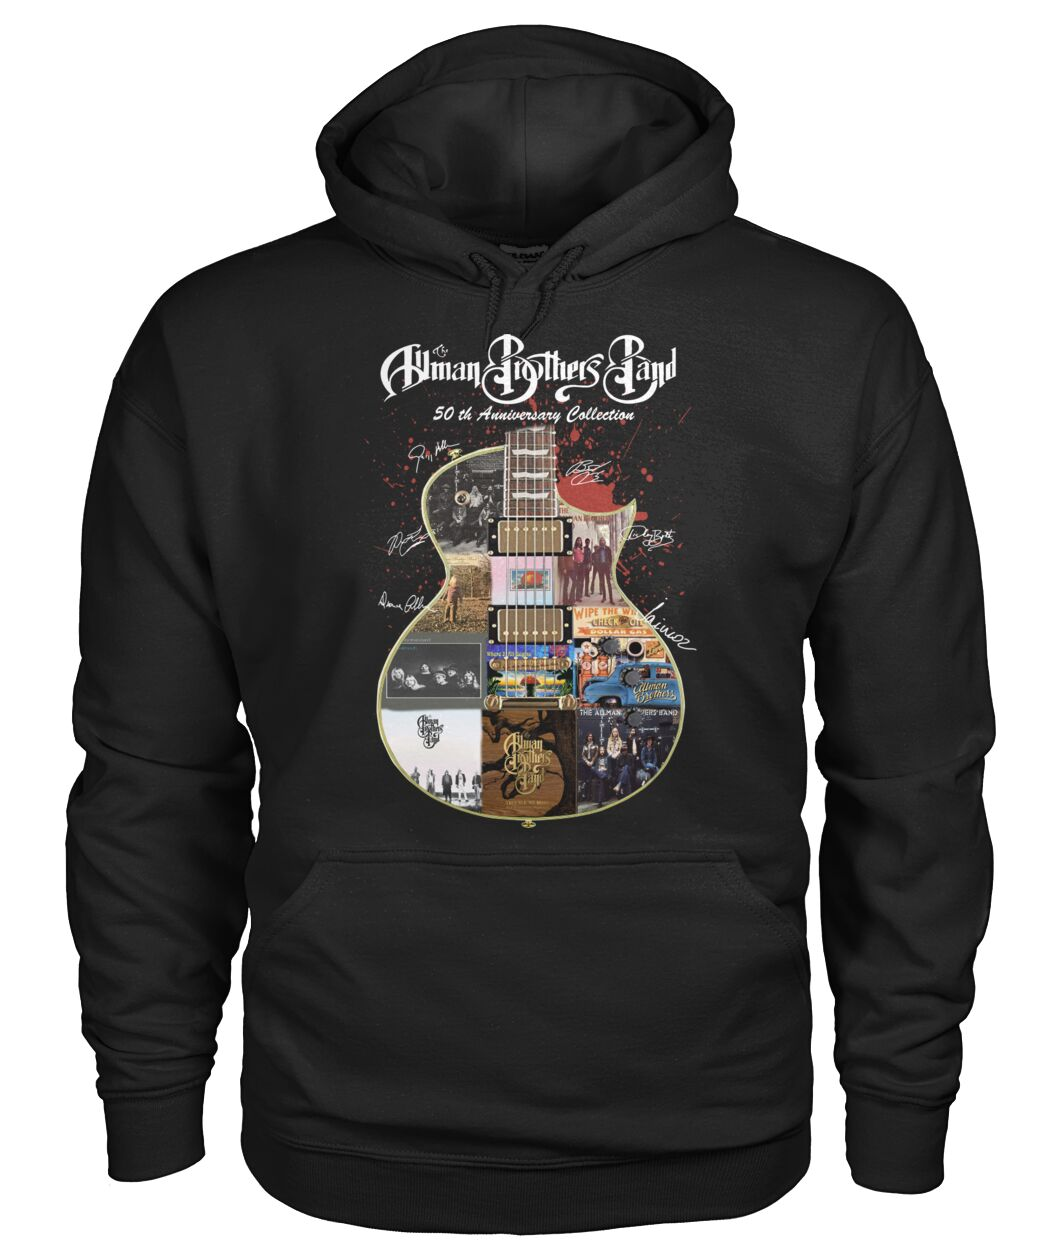 Allman brothers band 50th anniversary collection guitar signature hoodie